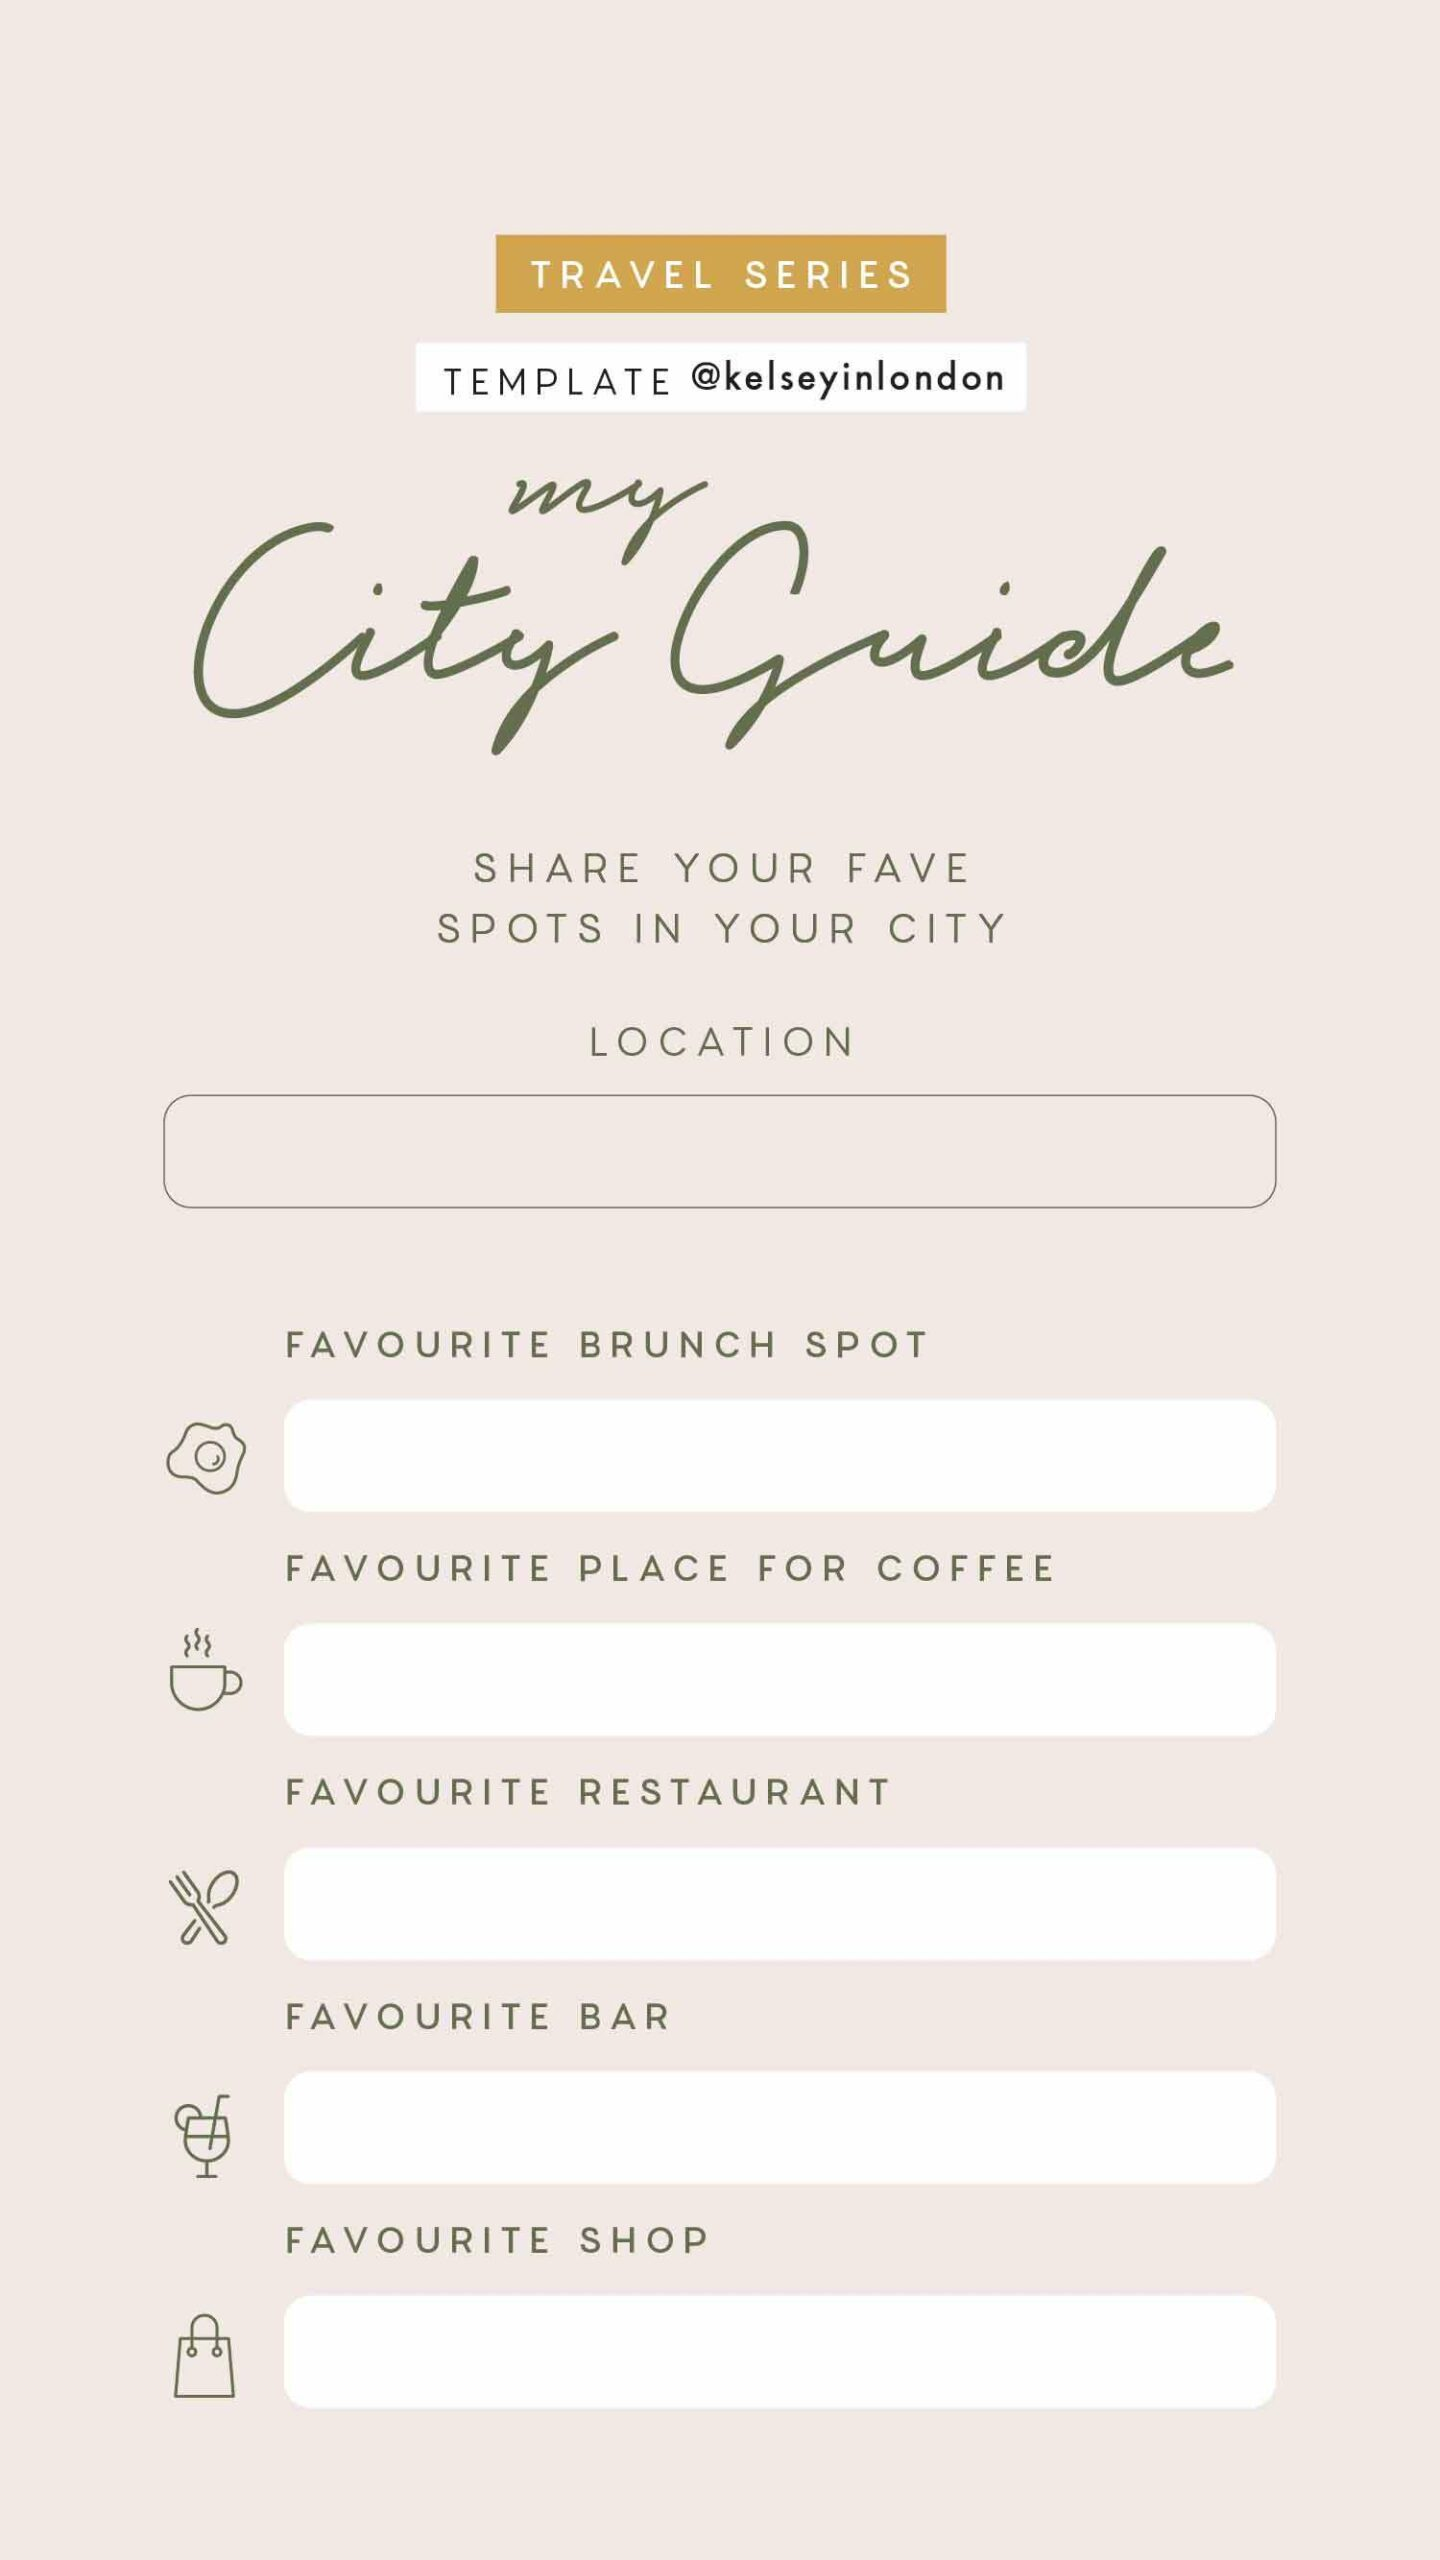 Instagram Story Templates - @kelseyinlondon Kelsey Heinrichs Travel bucket lists travel this or that travel quiz 4